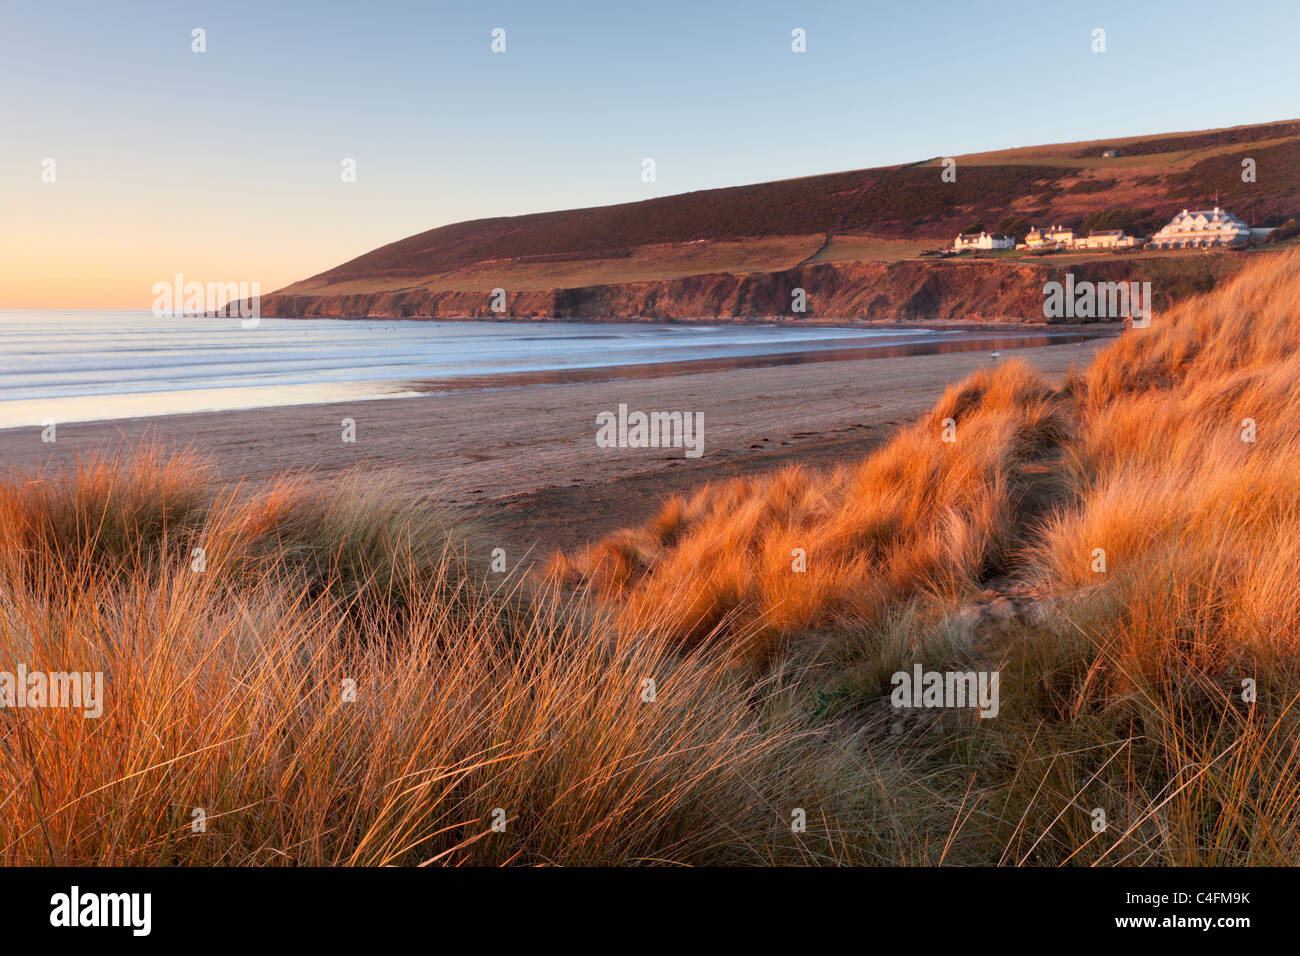 Saunton Sands and Saunton Down from the sand dunes at Braunton Burrows, Devon, England. Winter (January) 2011. - Stock Image